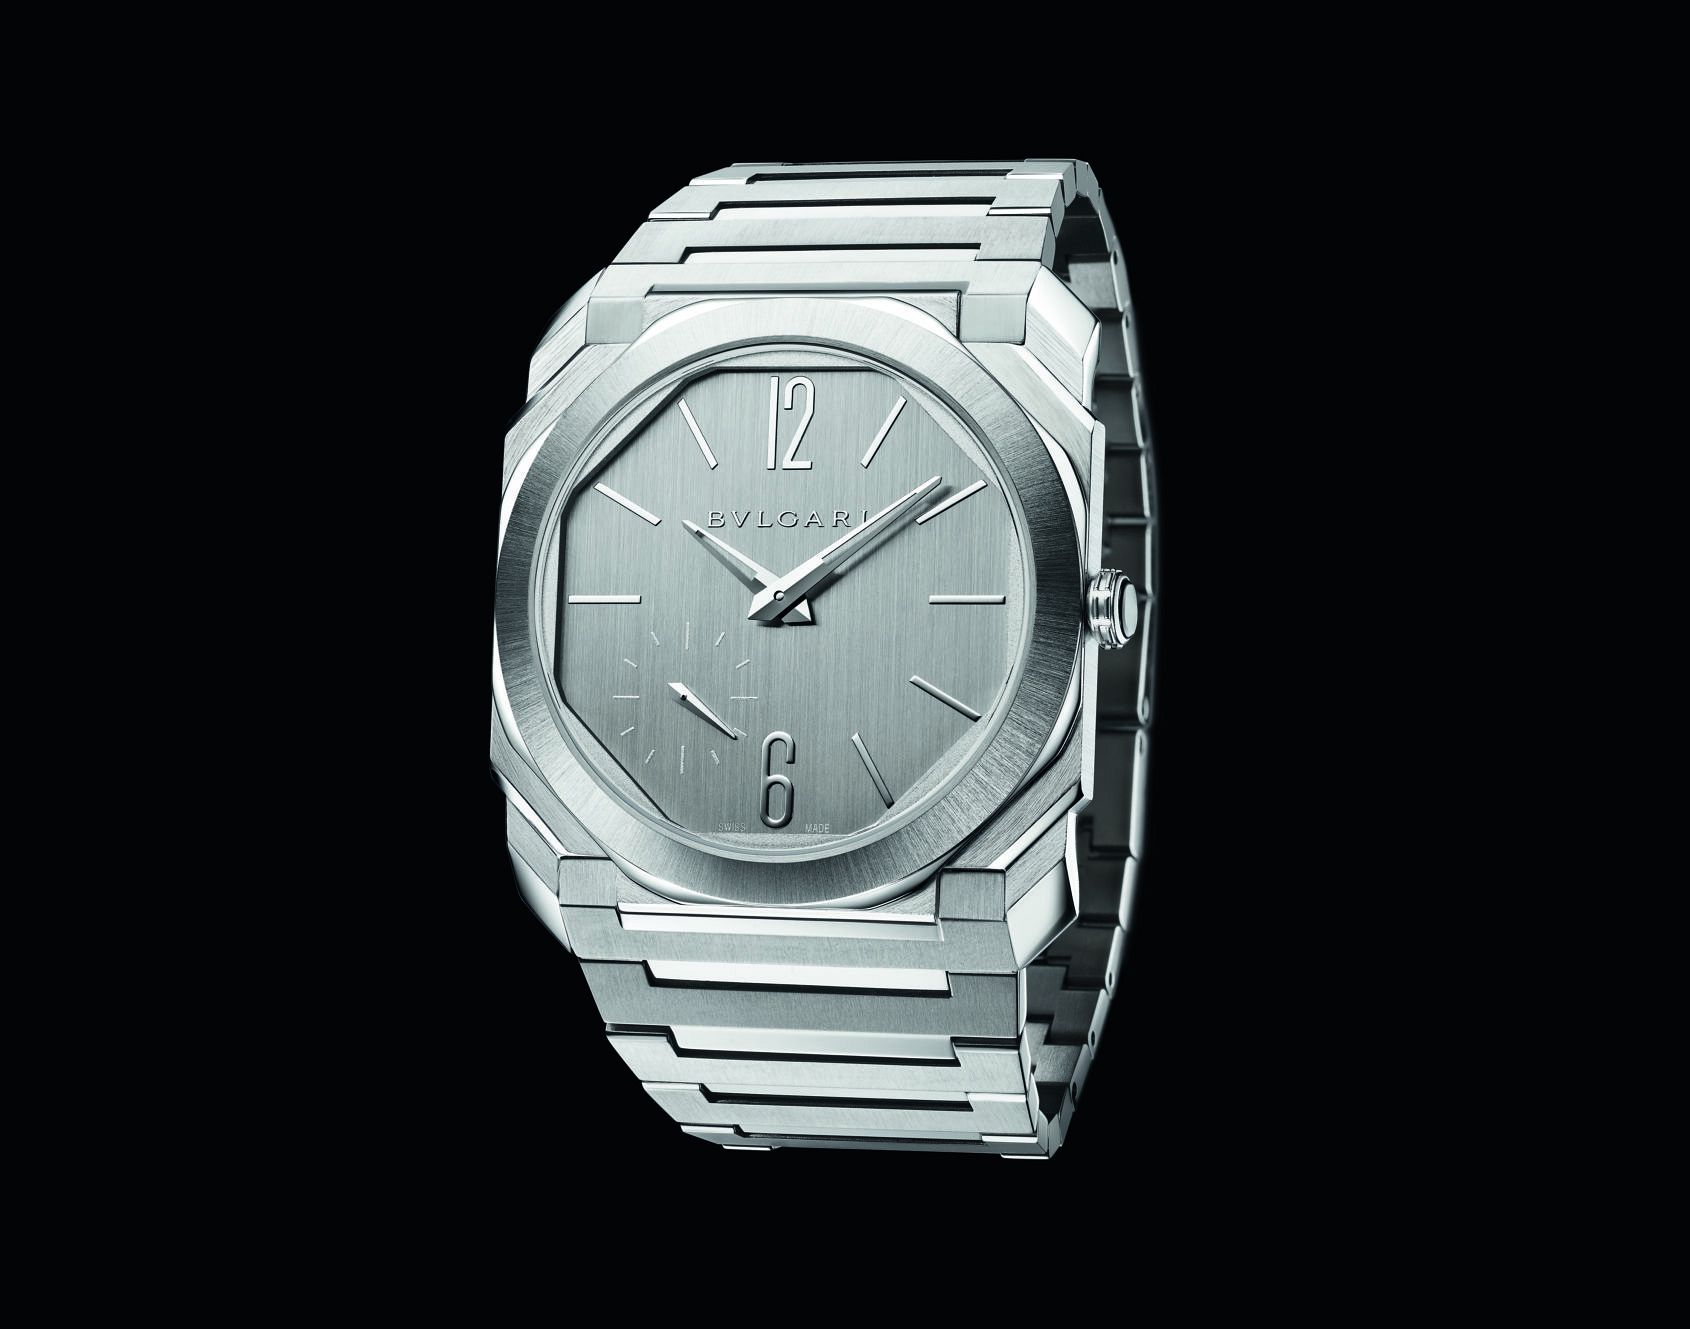 INTRODUCING: The Bulgari Octo Finissimo S Silvered Dial is the Silver Surfer we never knew we wanted…